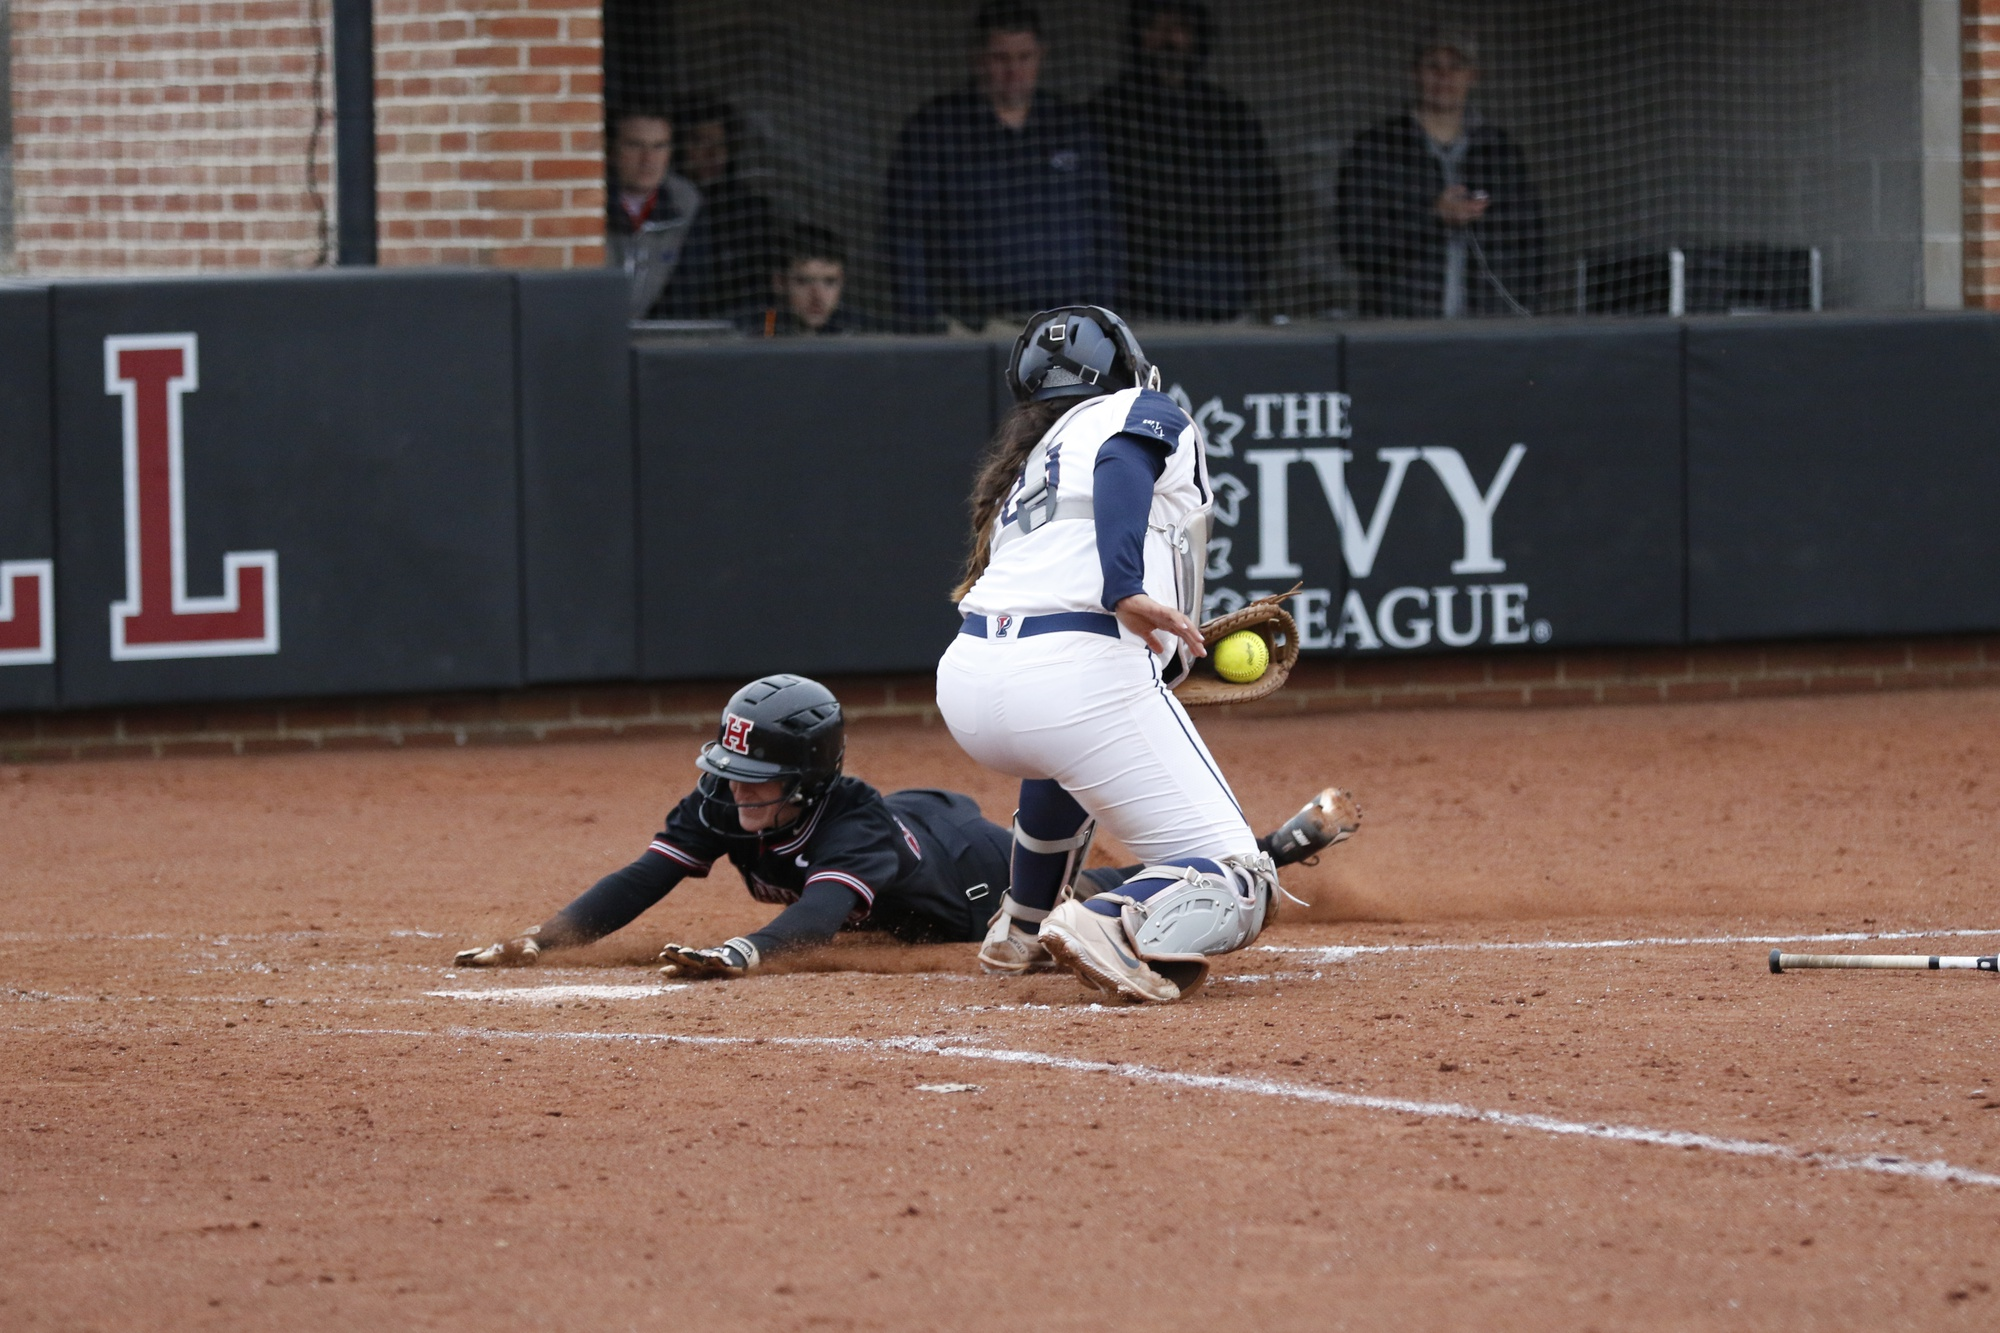 Rich's speed and aggressiveness on the basepaths consistently puts her in scoring position and creates extra runs for the Harvard softball team.